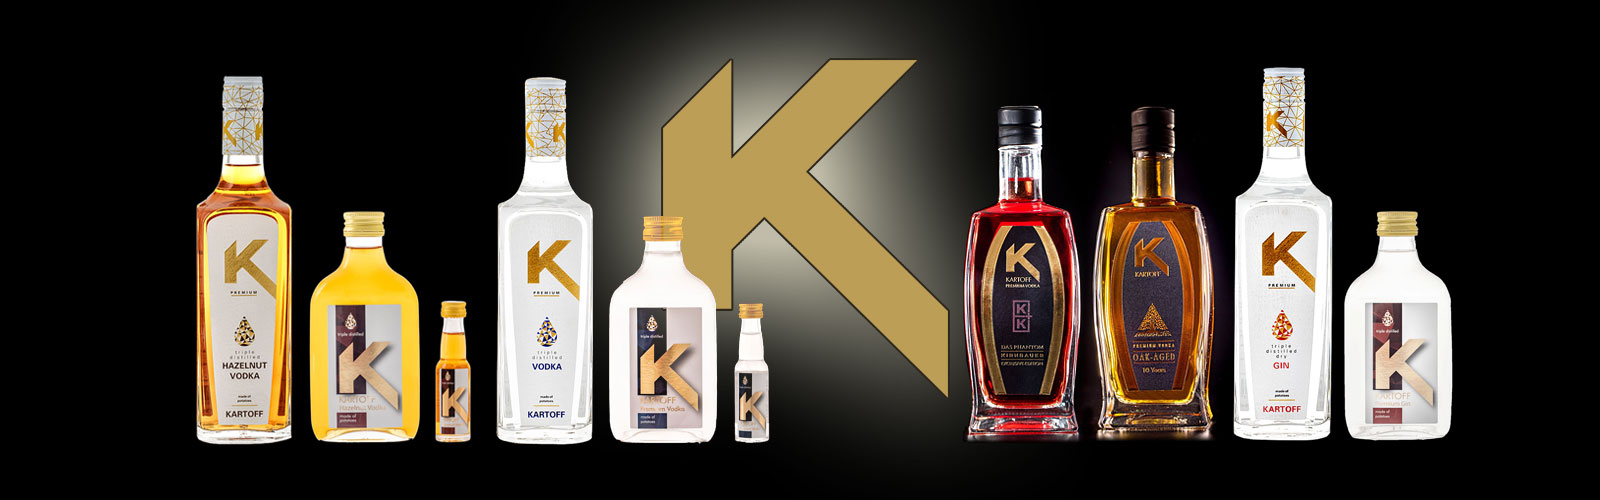 KARTOFF VODKA